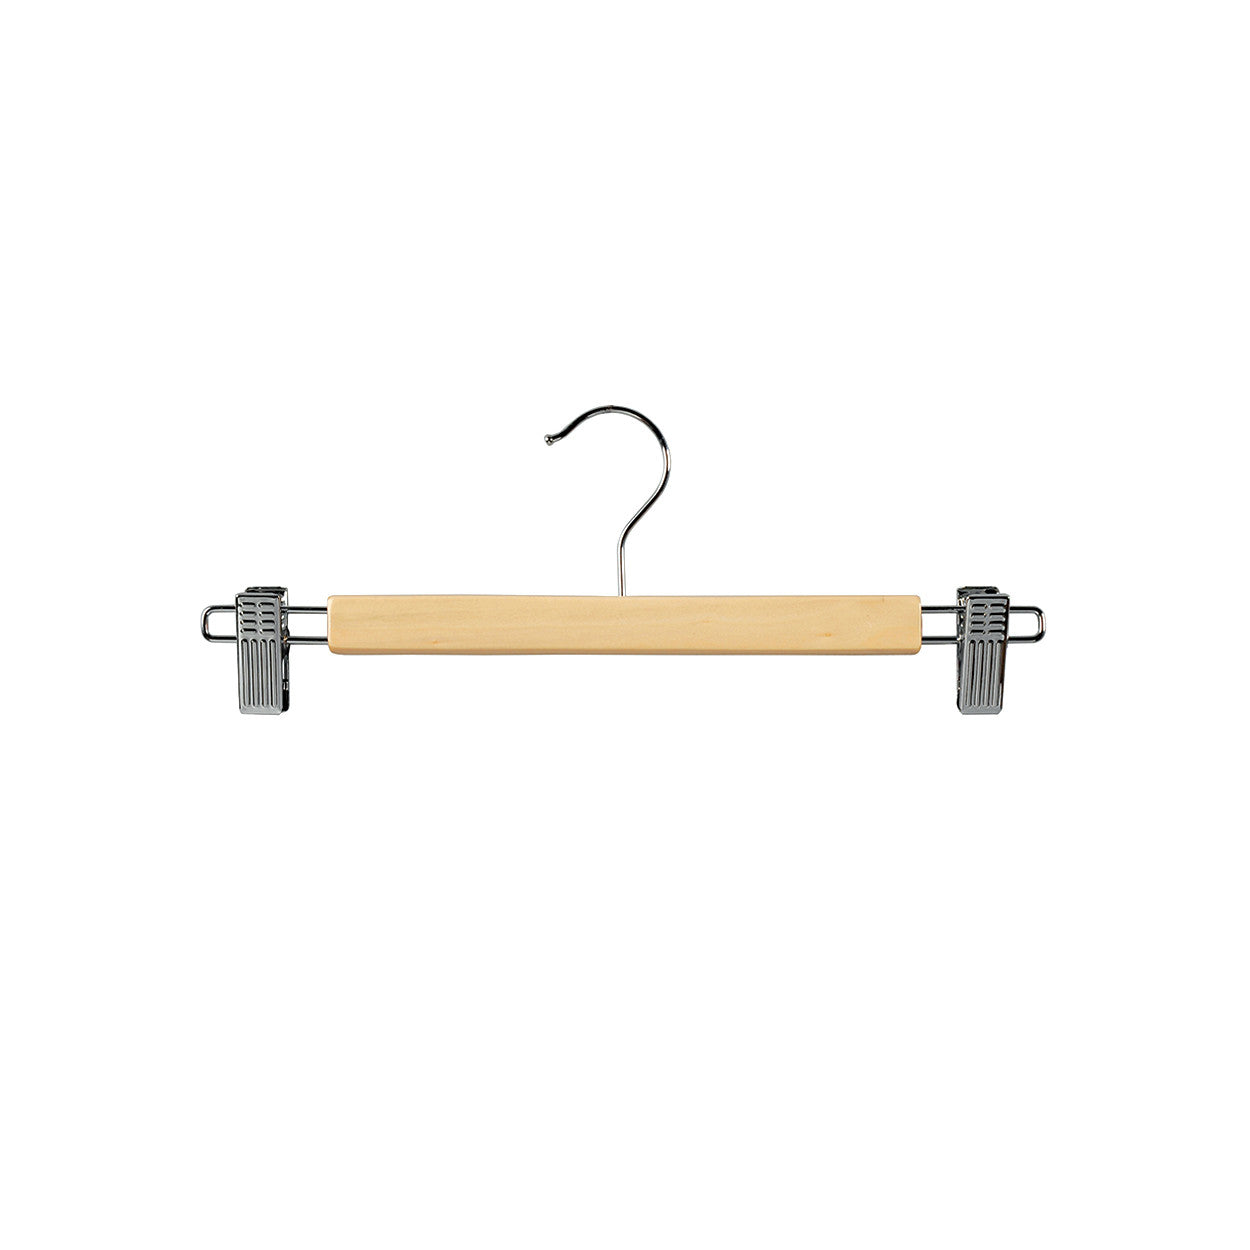 Beech Clip Timber Hanger With Chrome Clips At Ends 330 W X 12Mm Thick (Bundle of 10)